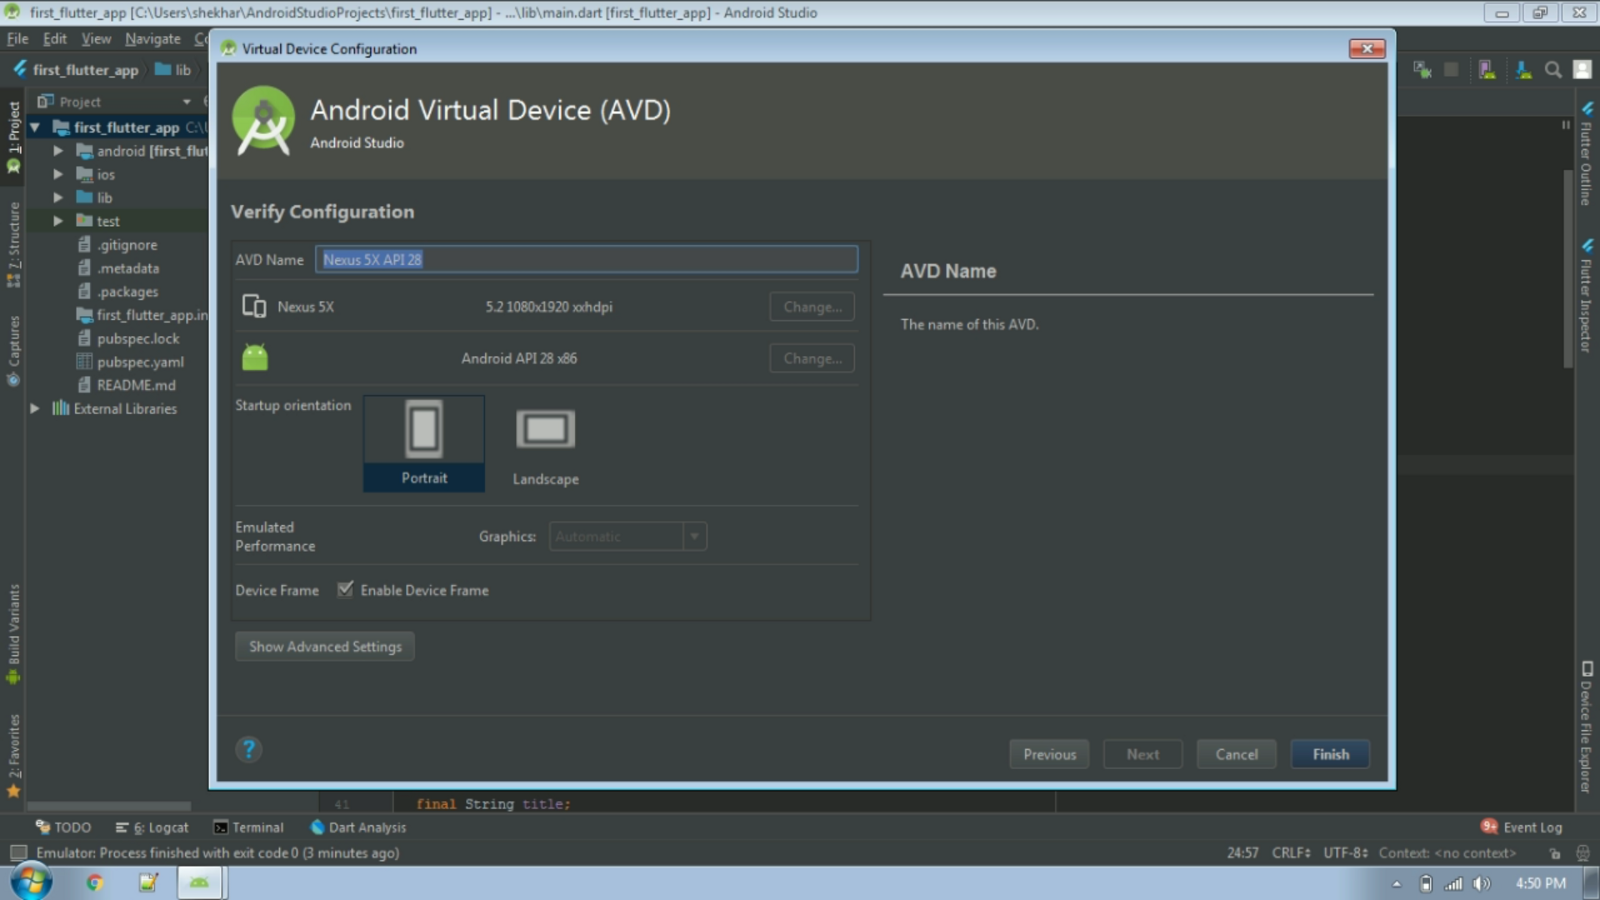 Create and Configure Android Virtual Device (AVD) in Android